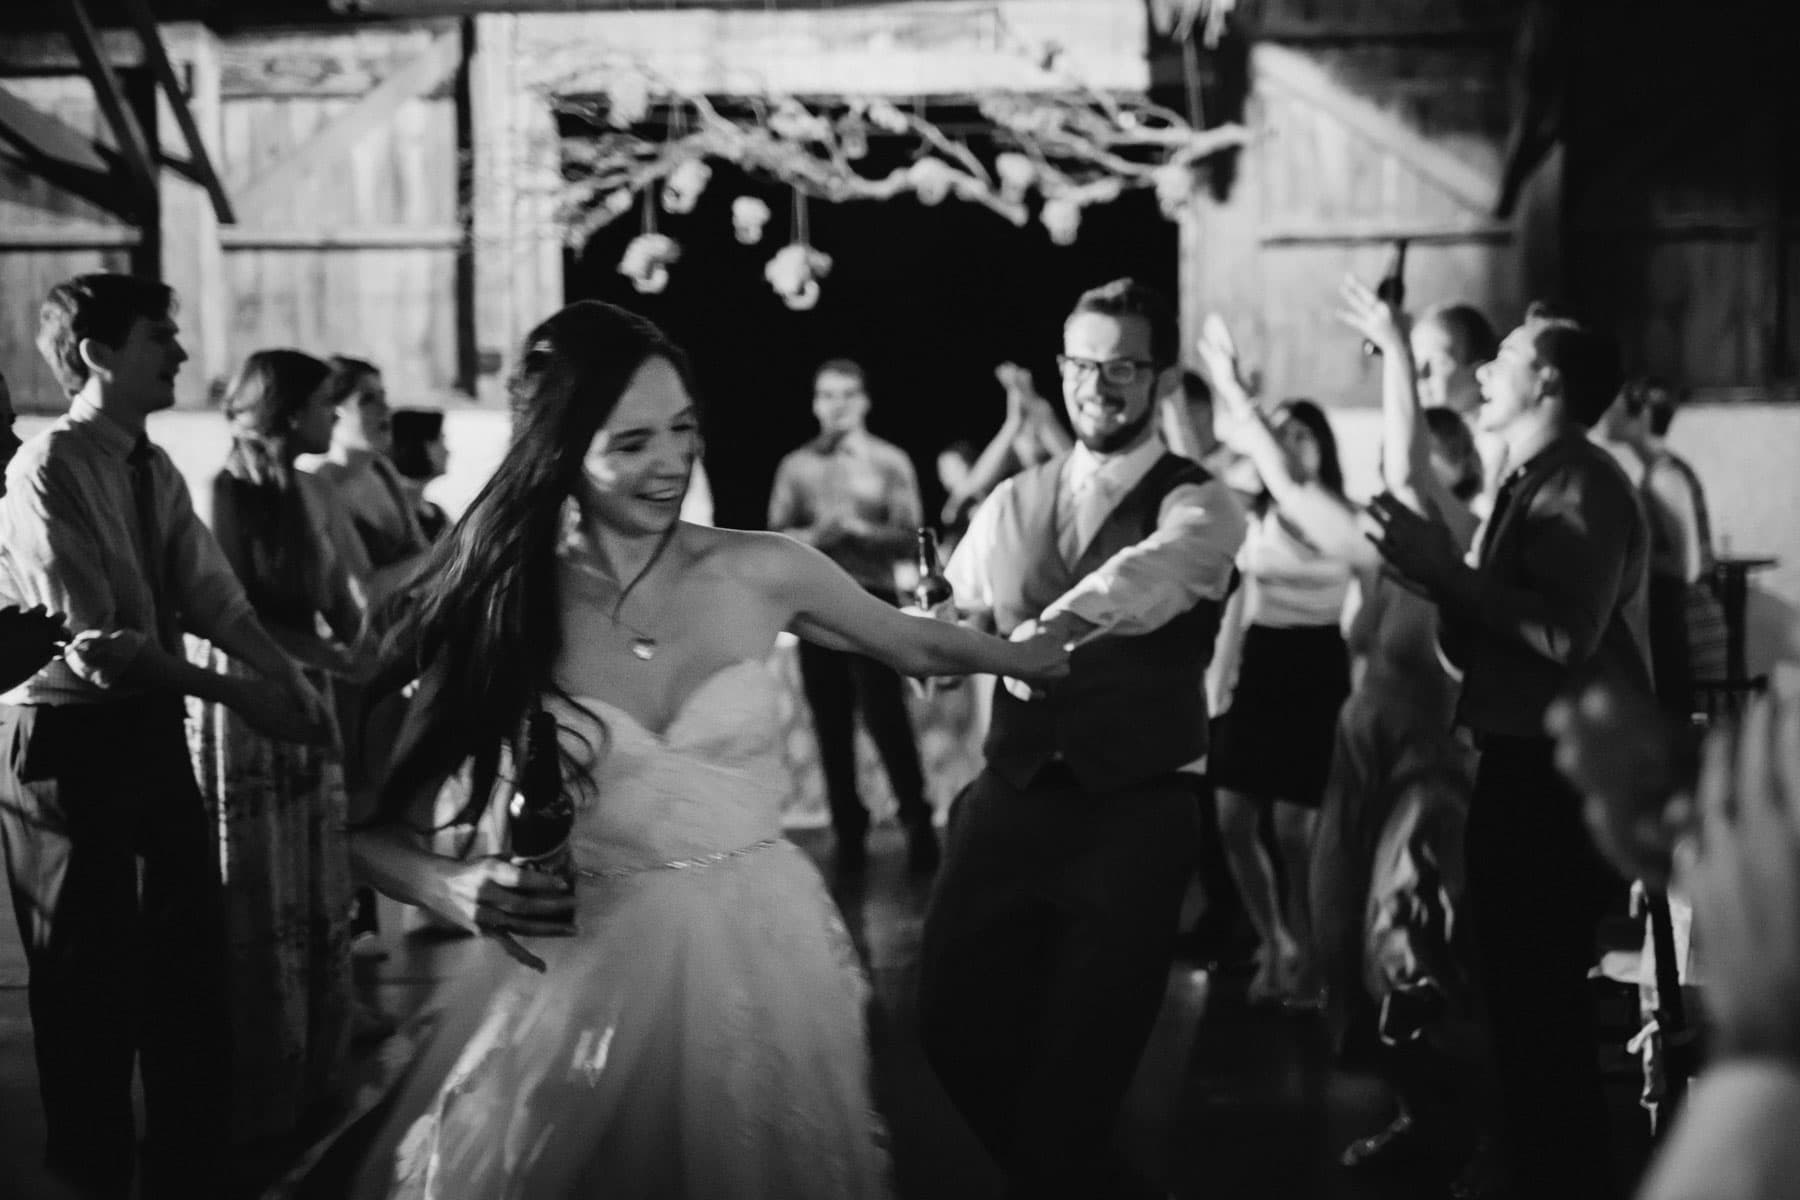 The brand and groom dance to rock music surrounded by guests in a barn at this Ball's Falls wedding.